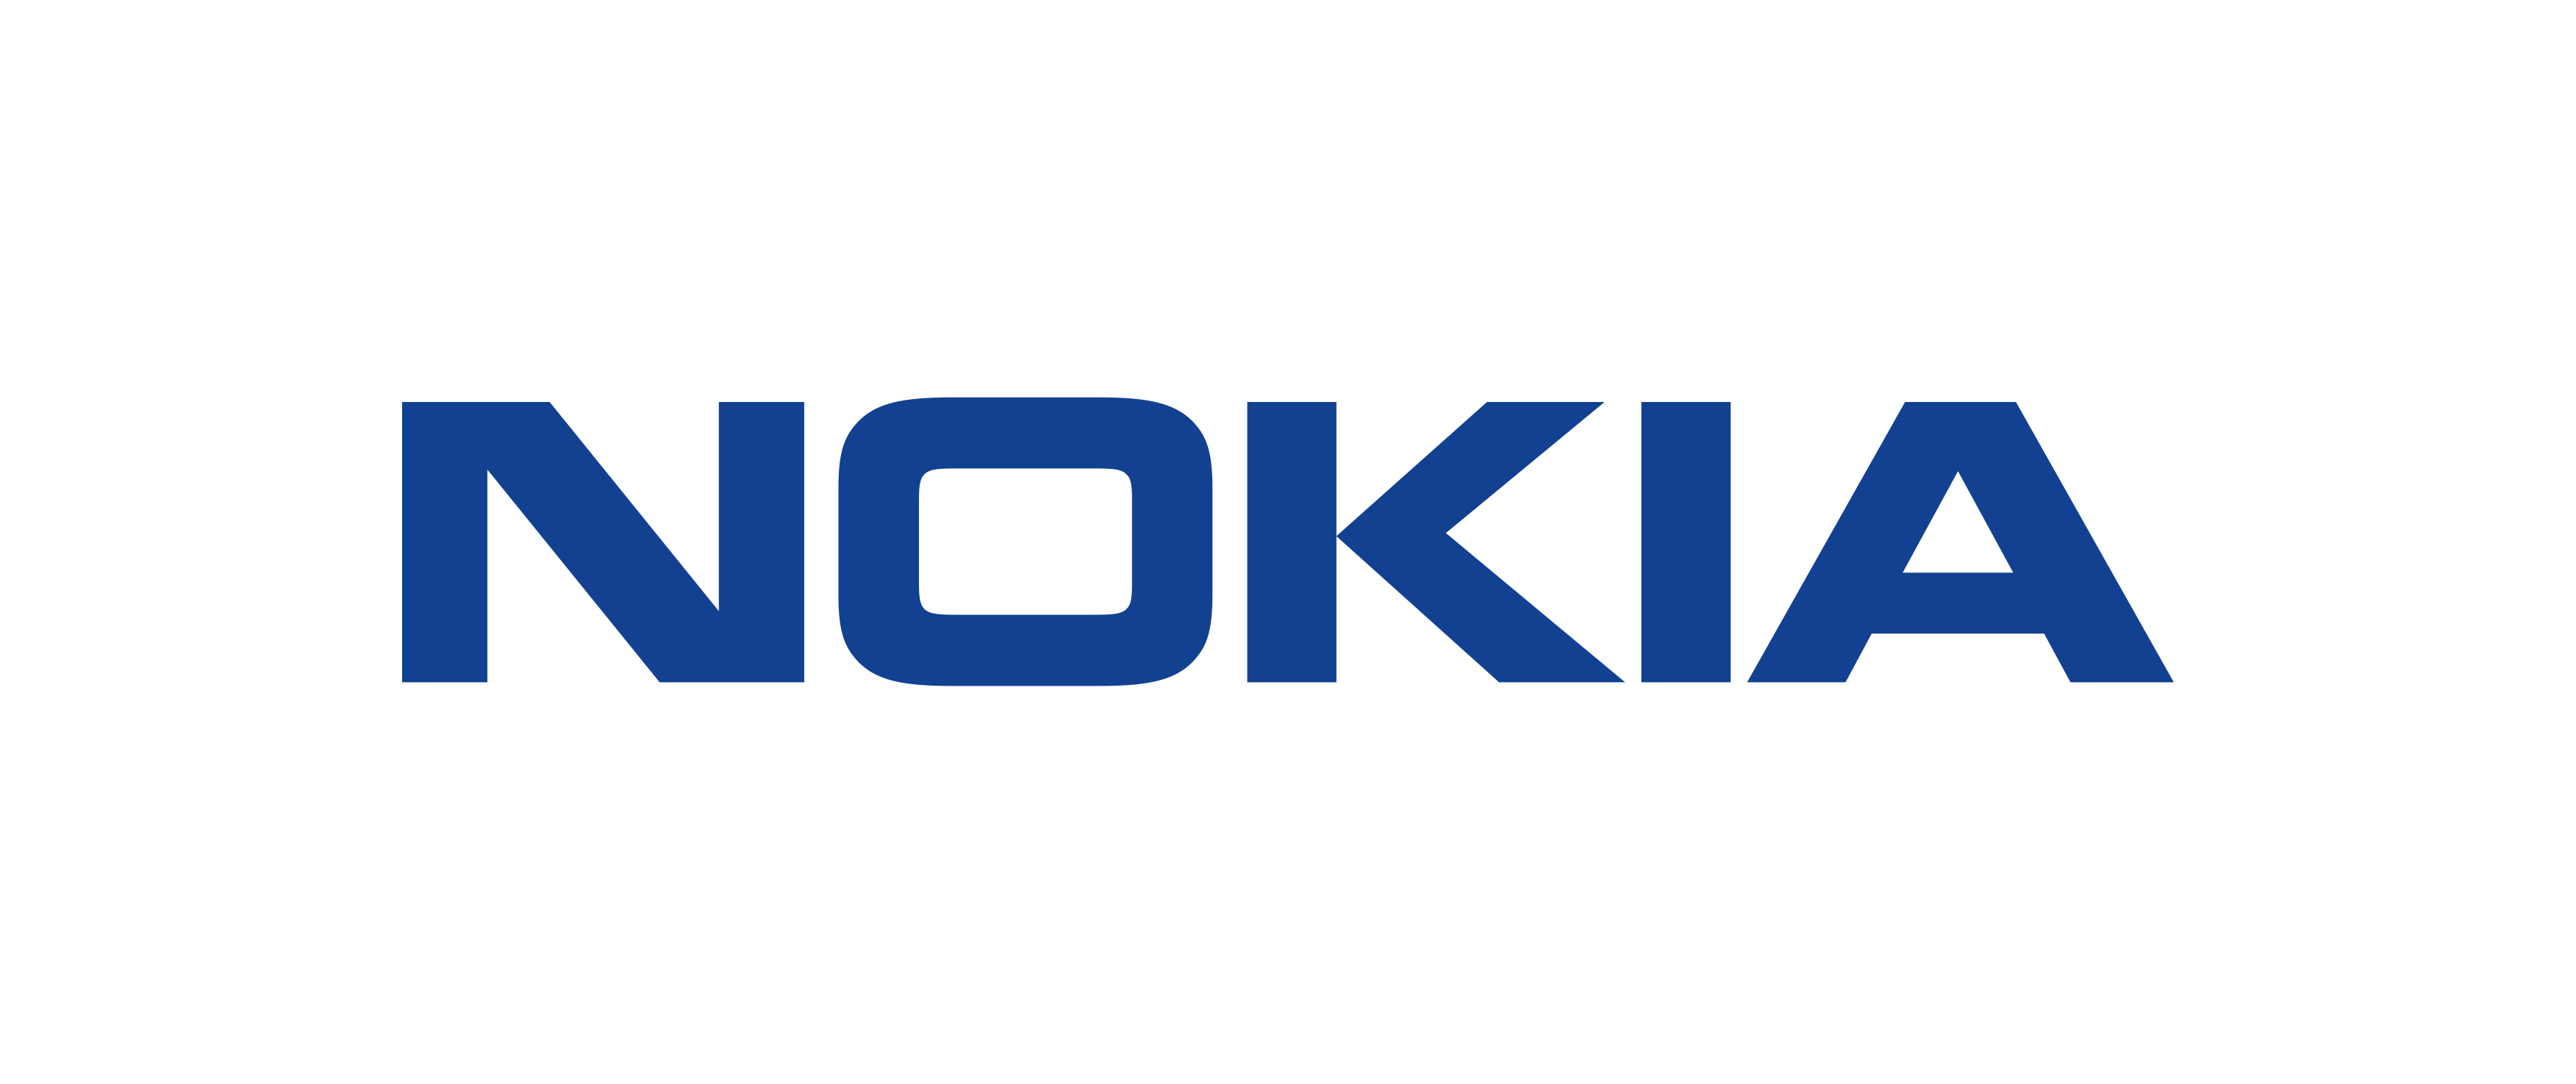 globenewswire.com - Nokia Oyj - Nokia selected by Globe Telecom to rollout 5G in the Philippines in three-year deal